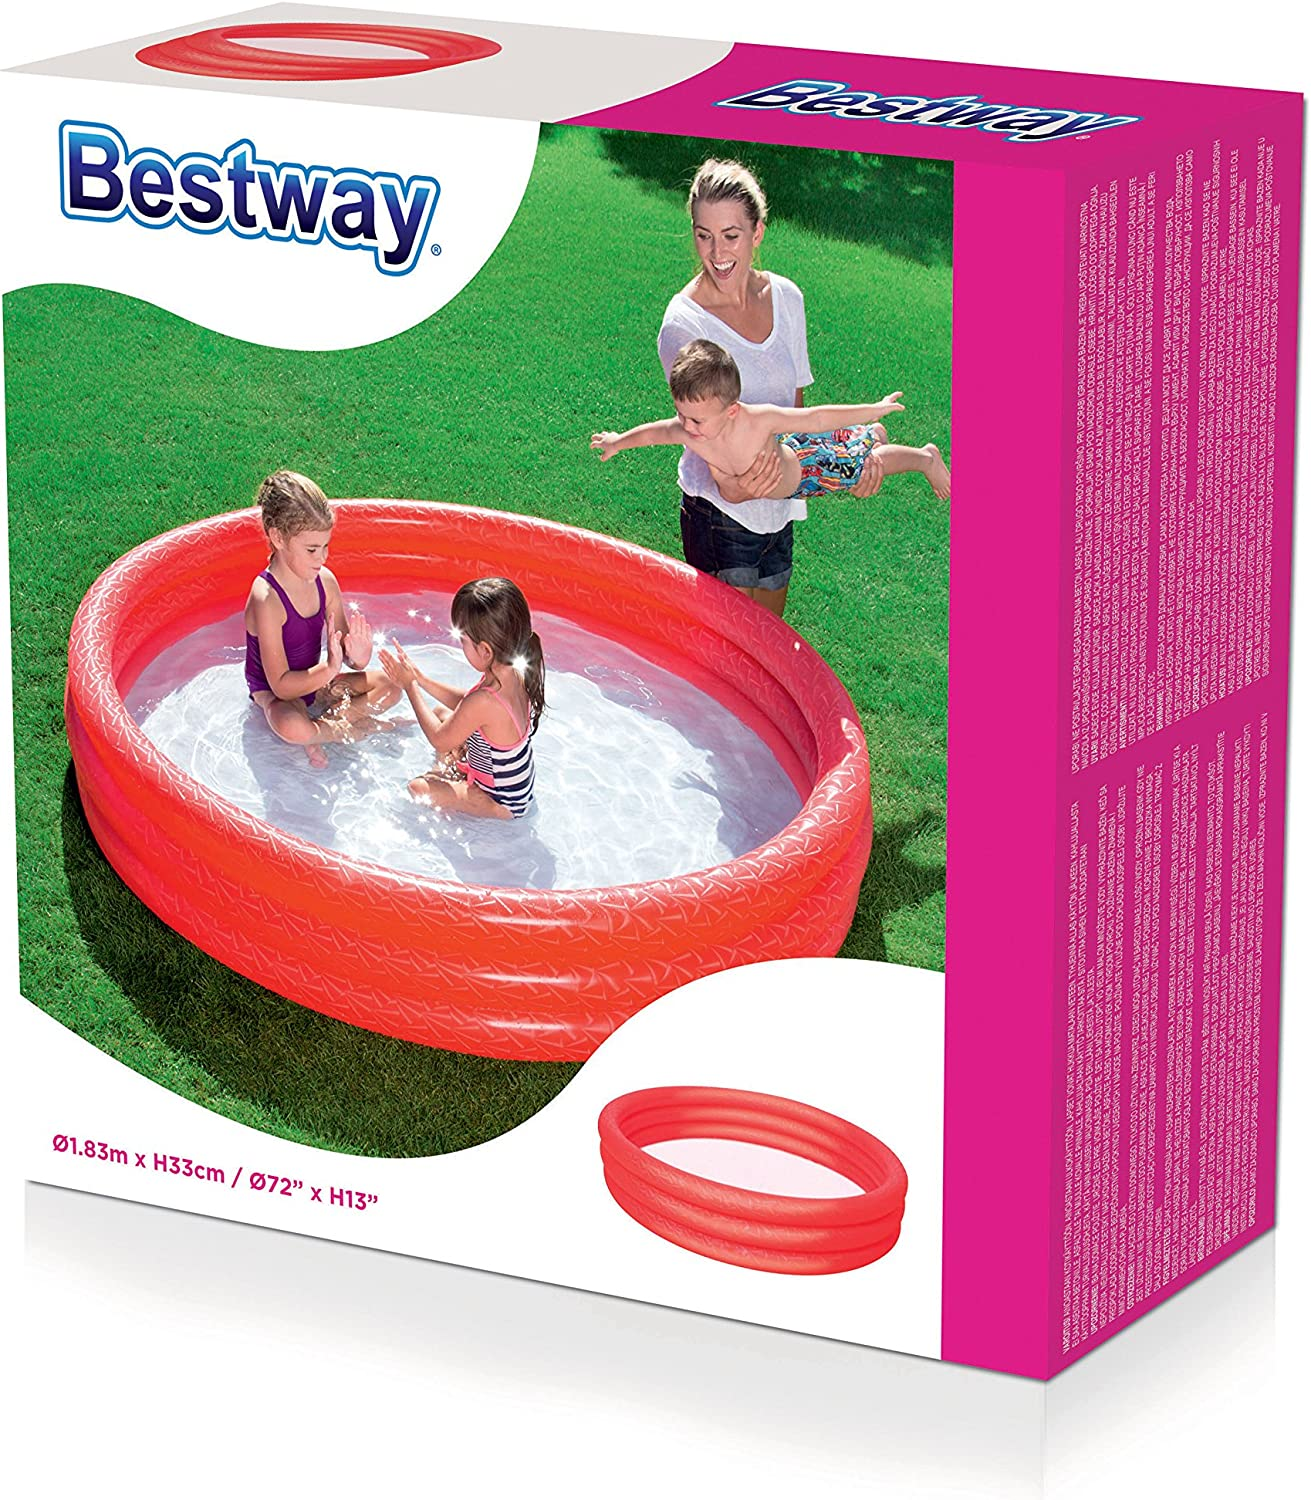 Splash and Play 3 Ring Pool Green 1.52m x 30cm